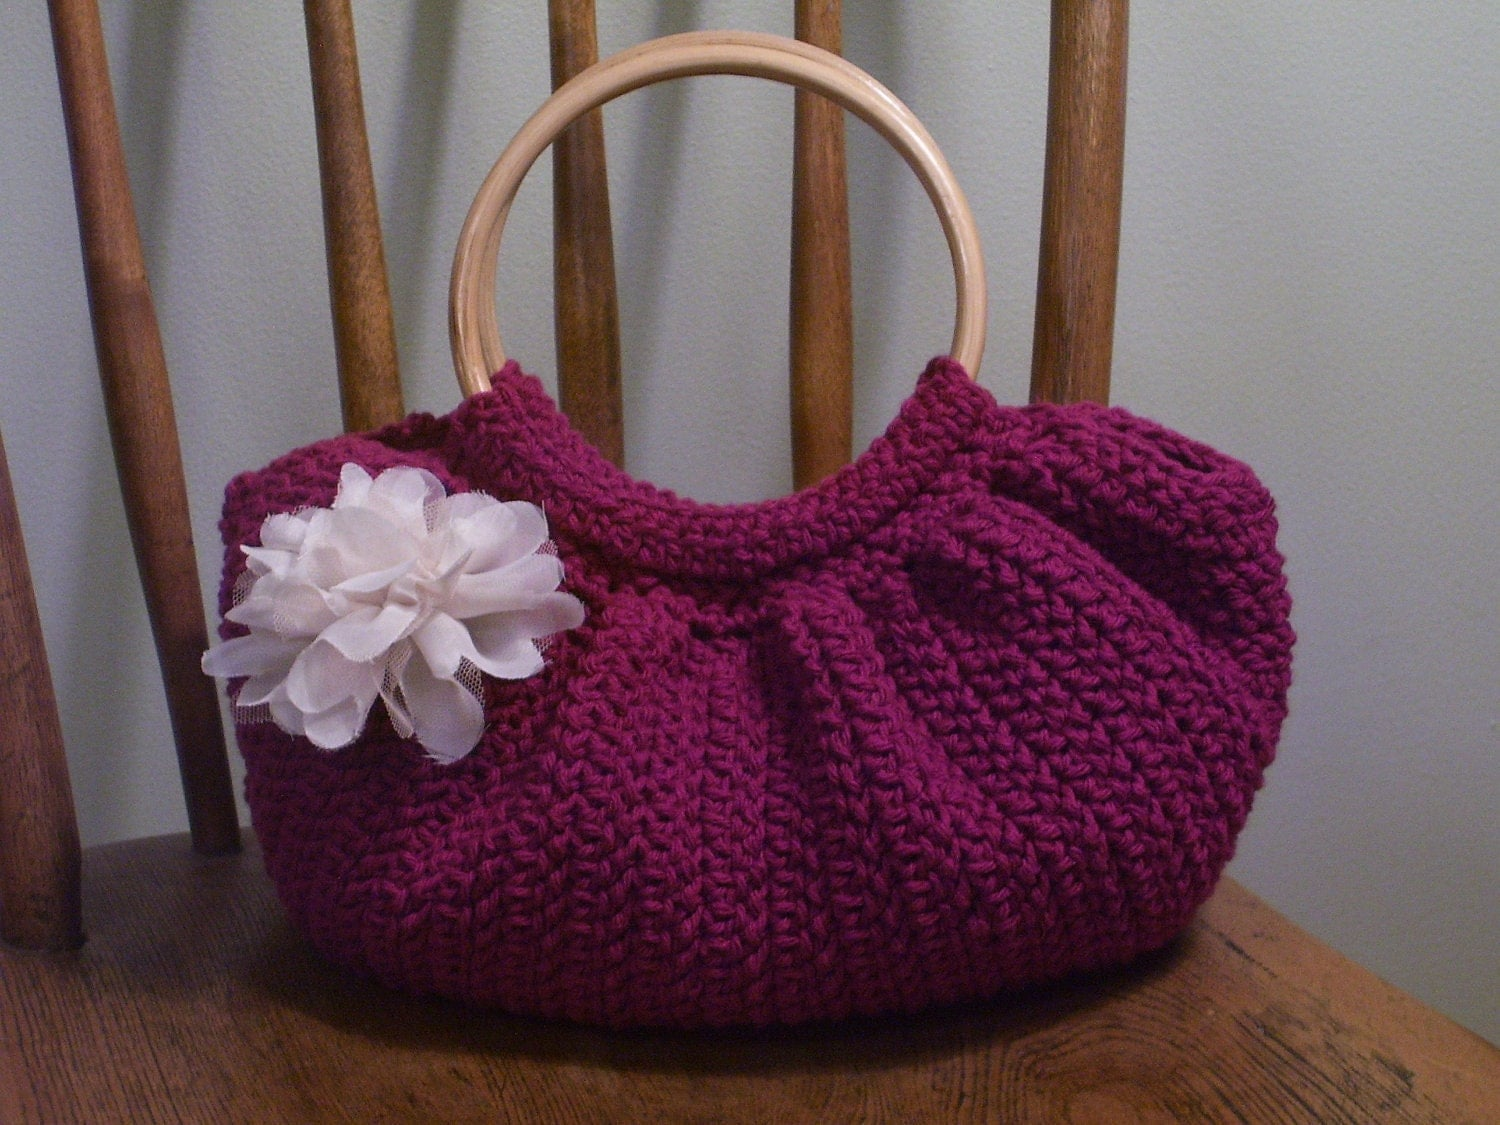 Crochet Purses And Bags Tutorials : Crochet Bags And Purses Tutorial Crochet Fat Bottom Bag Purse